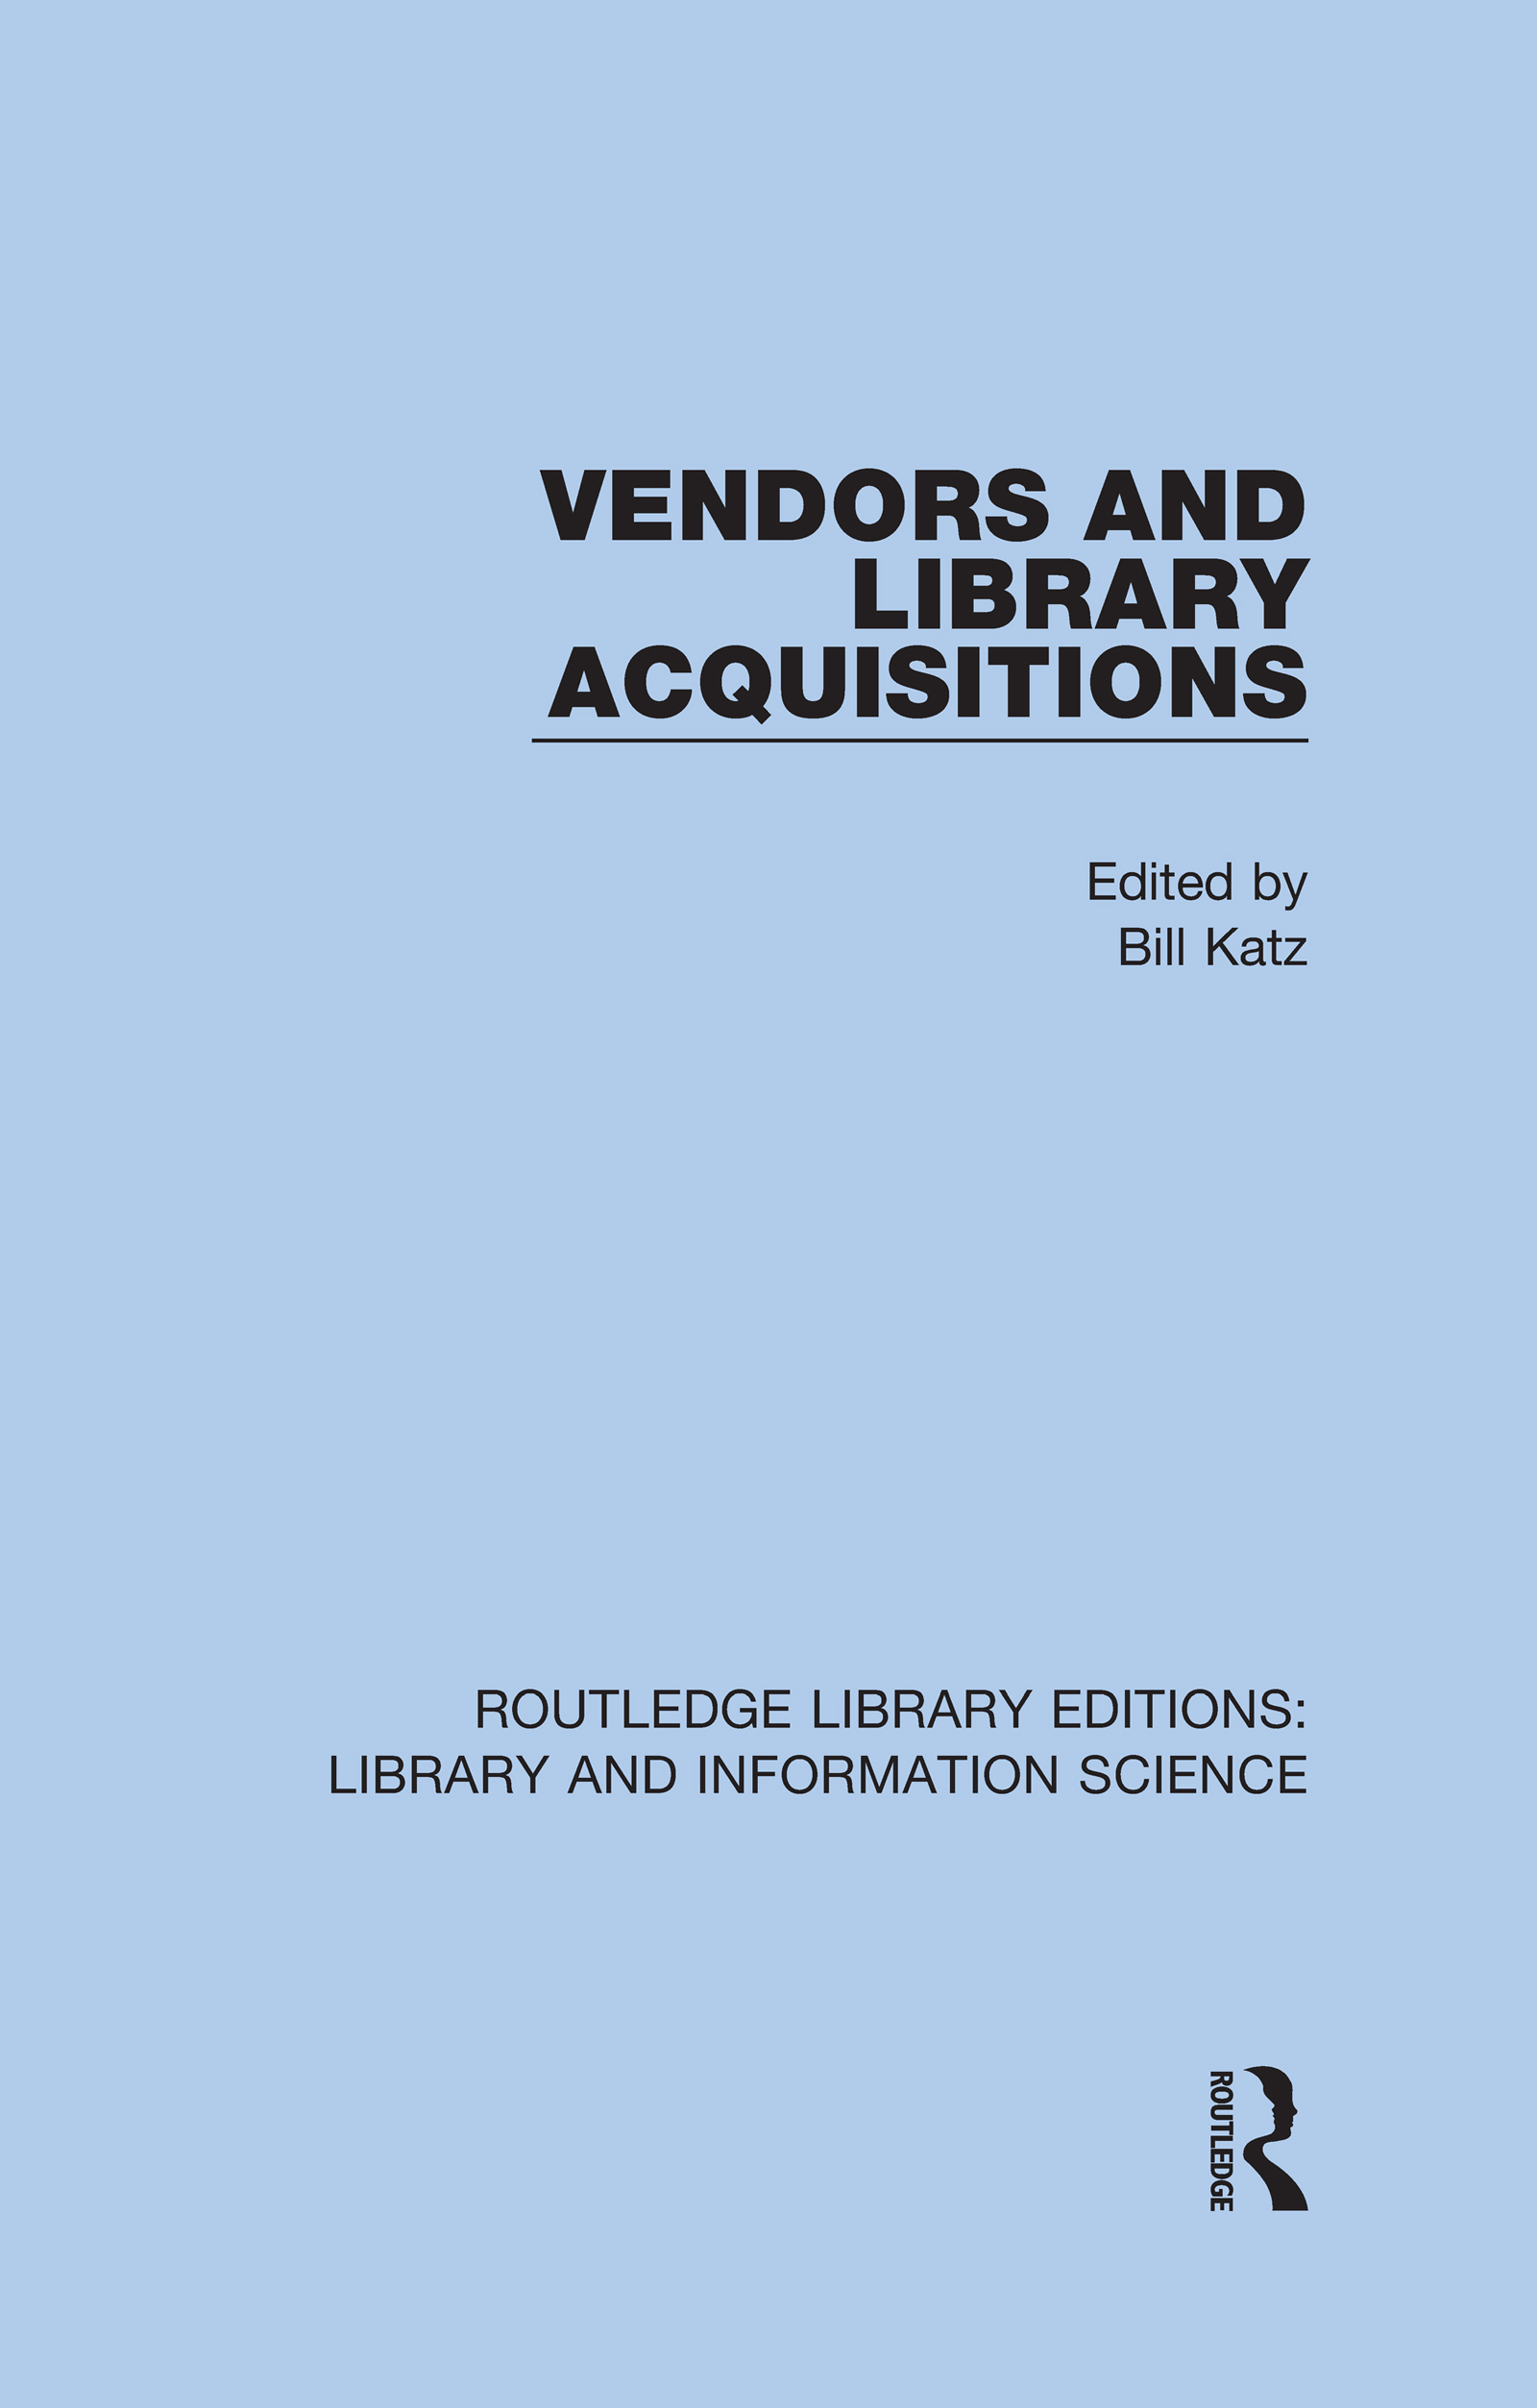 Vendors and Library Acquisitions